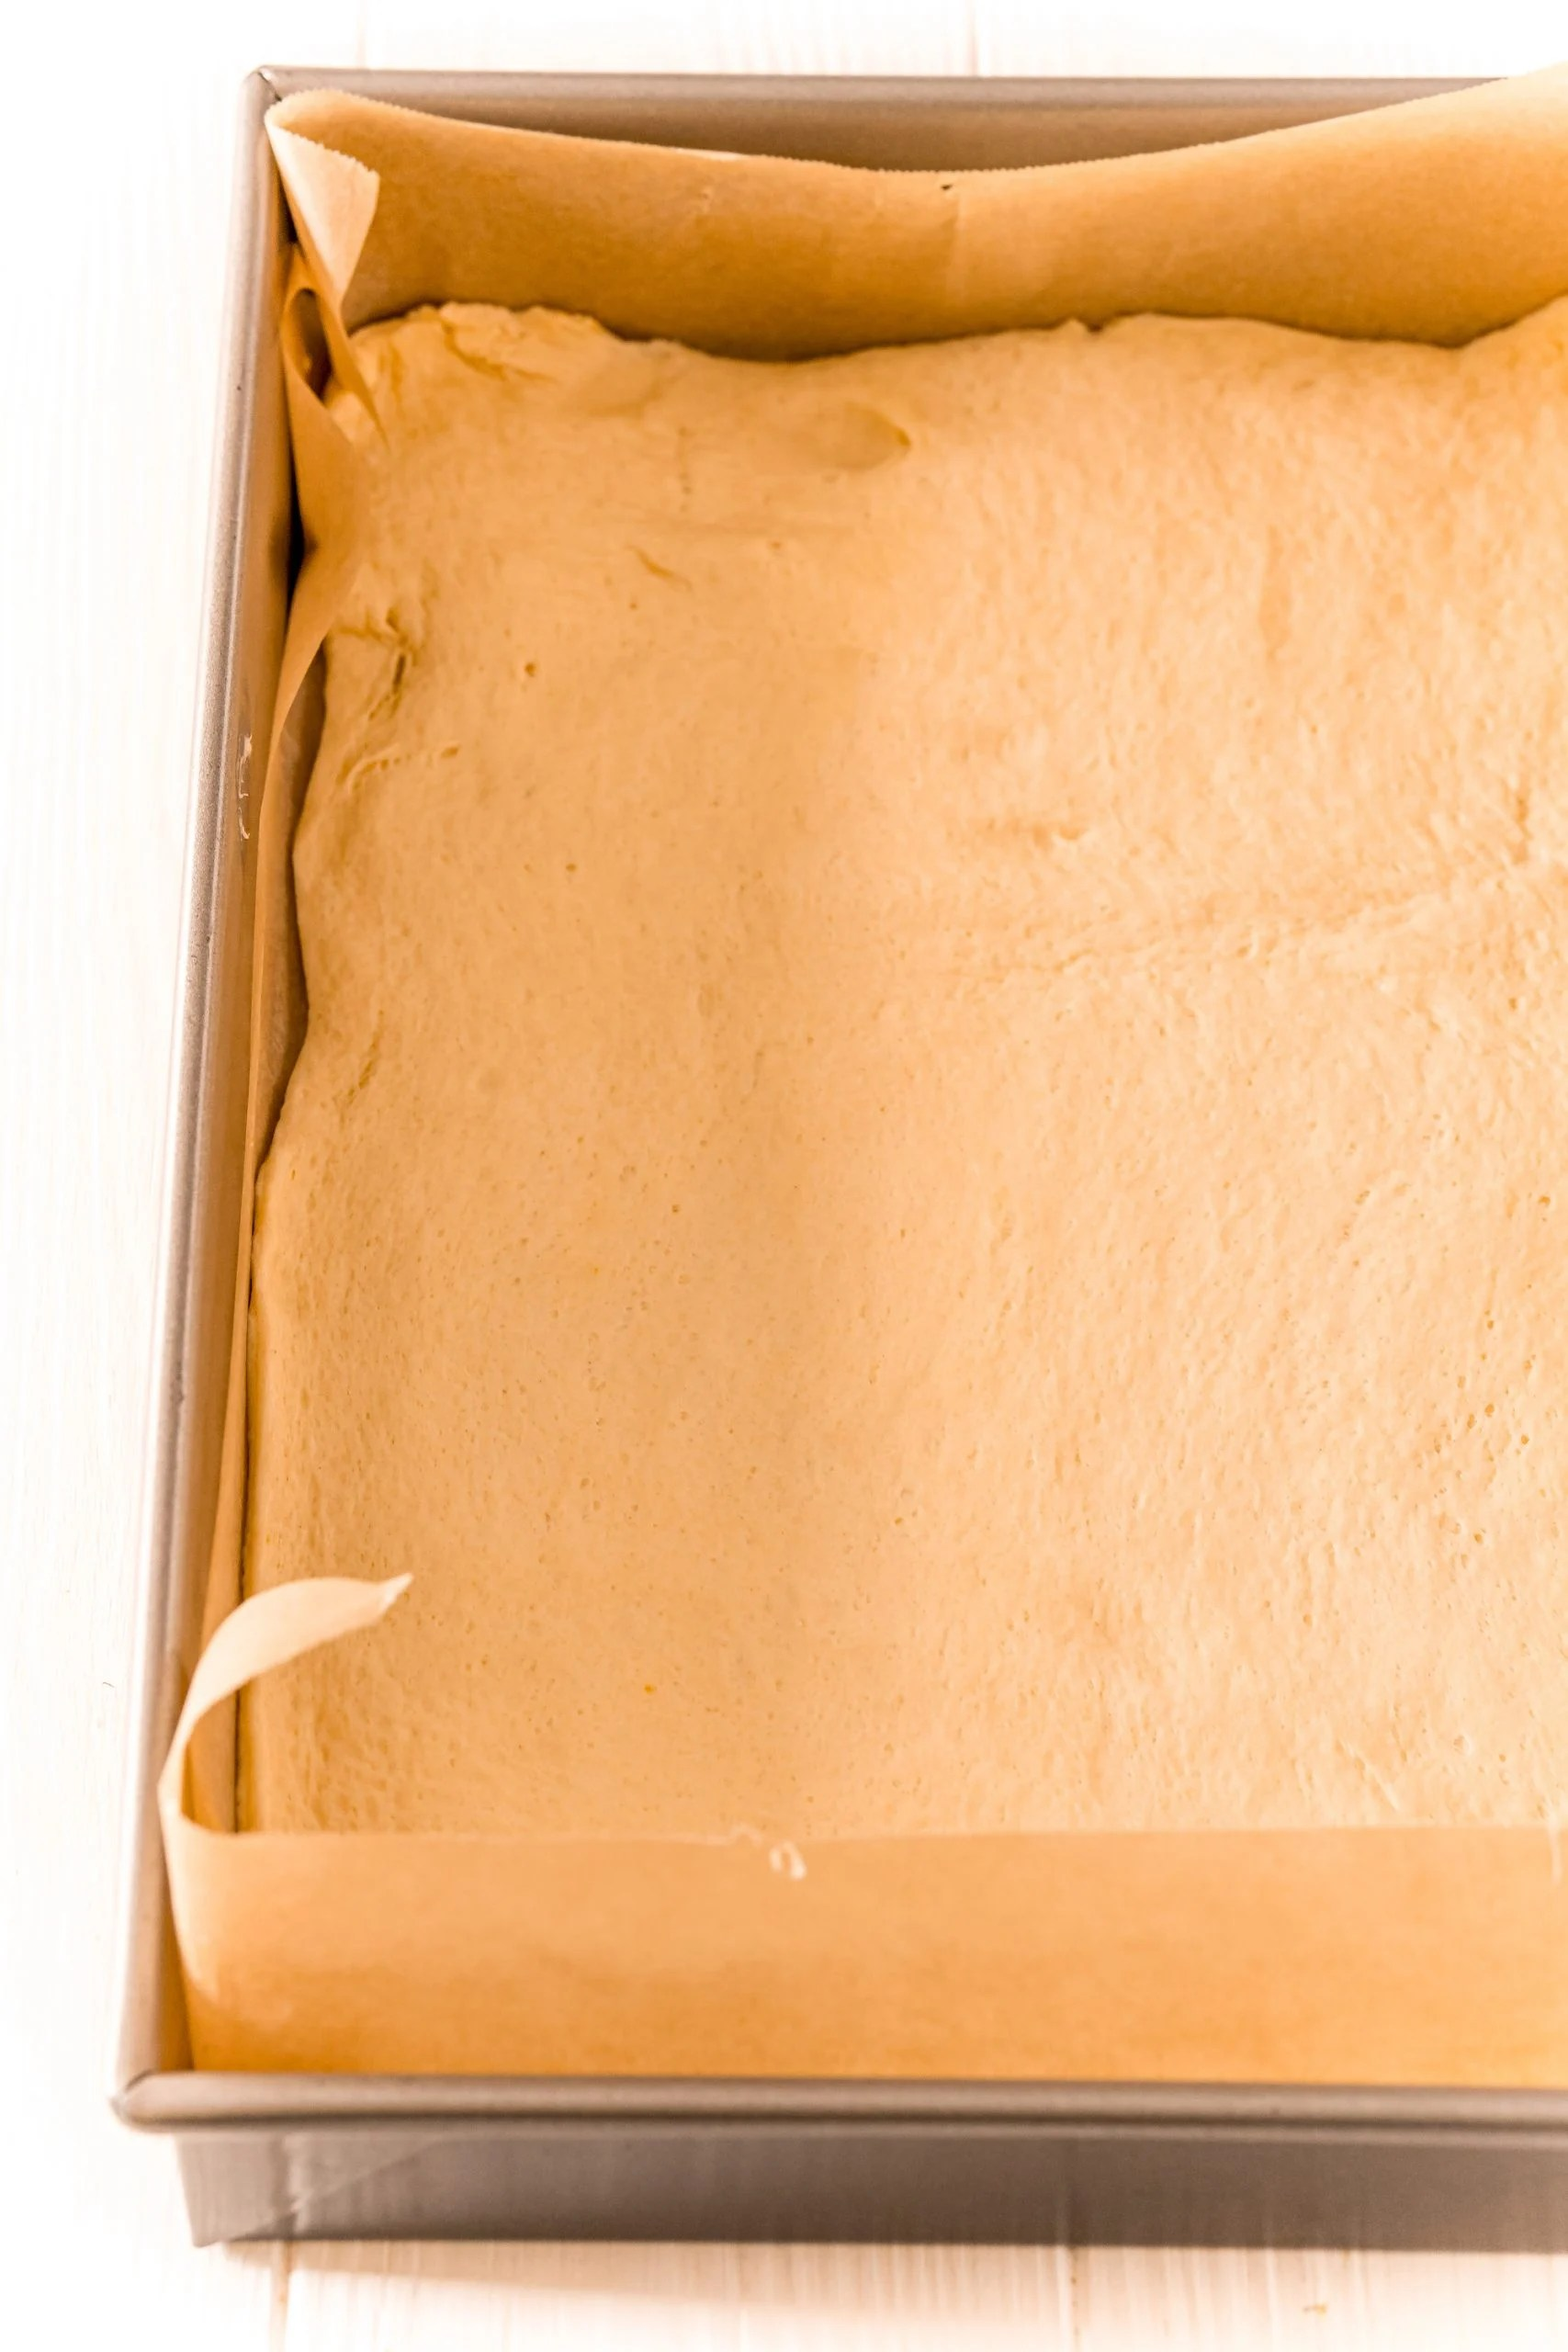 picture of dough in a baking dish with parchment paper